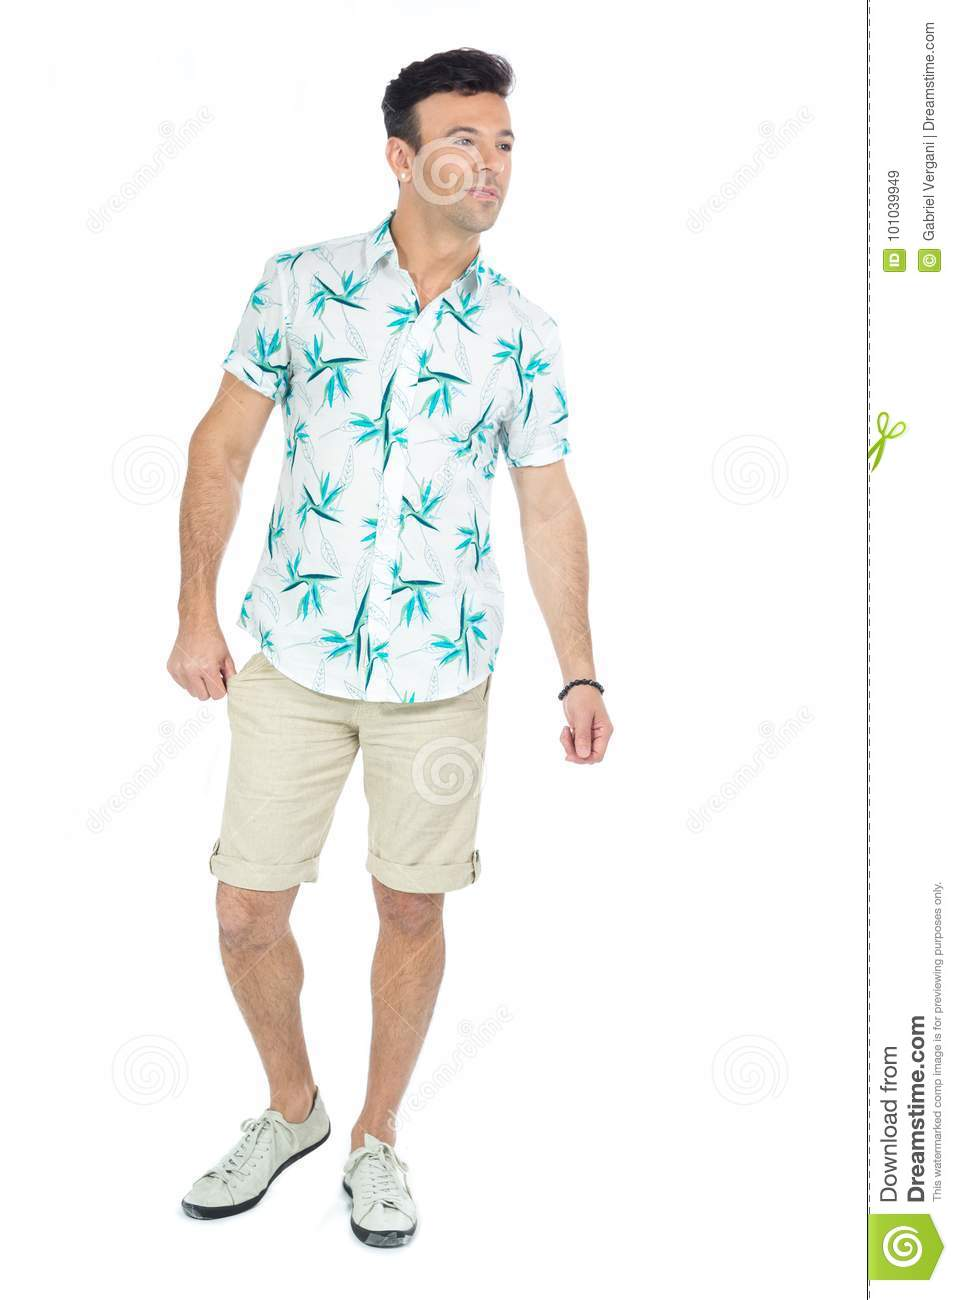 2a48d06c6cf Handsome Brazilian Male Wears Floral Shirt. Stock Image - Image of ...